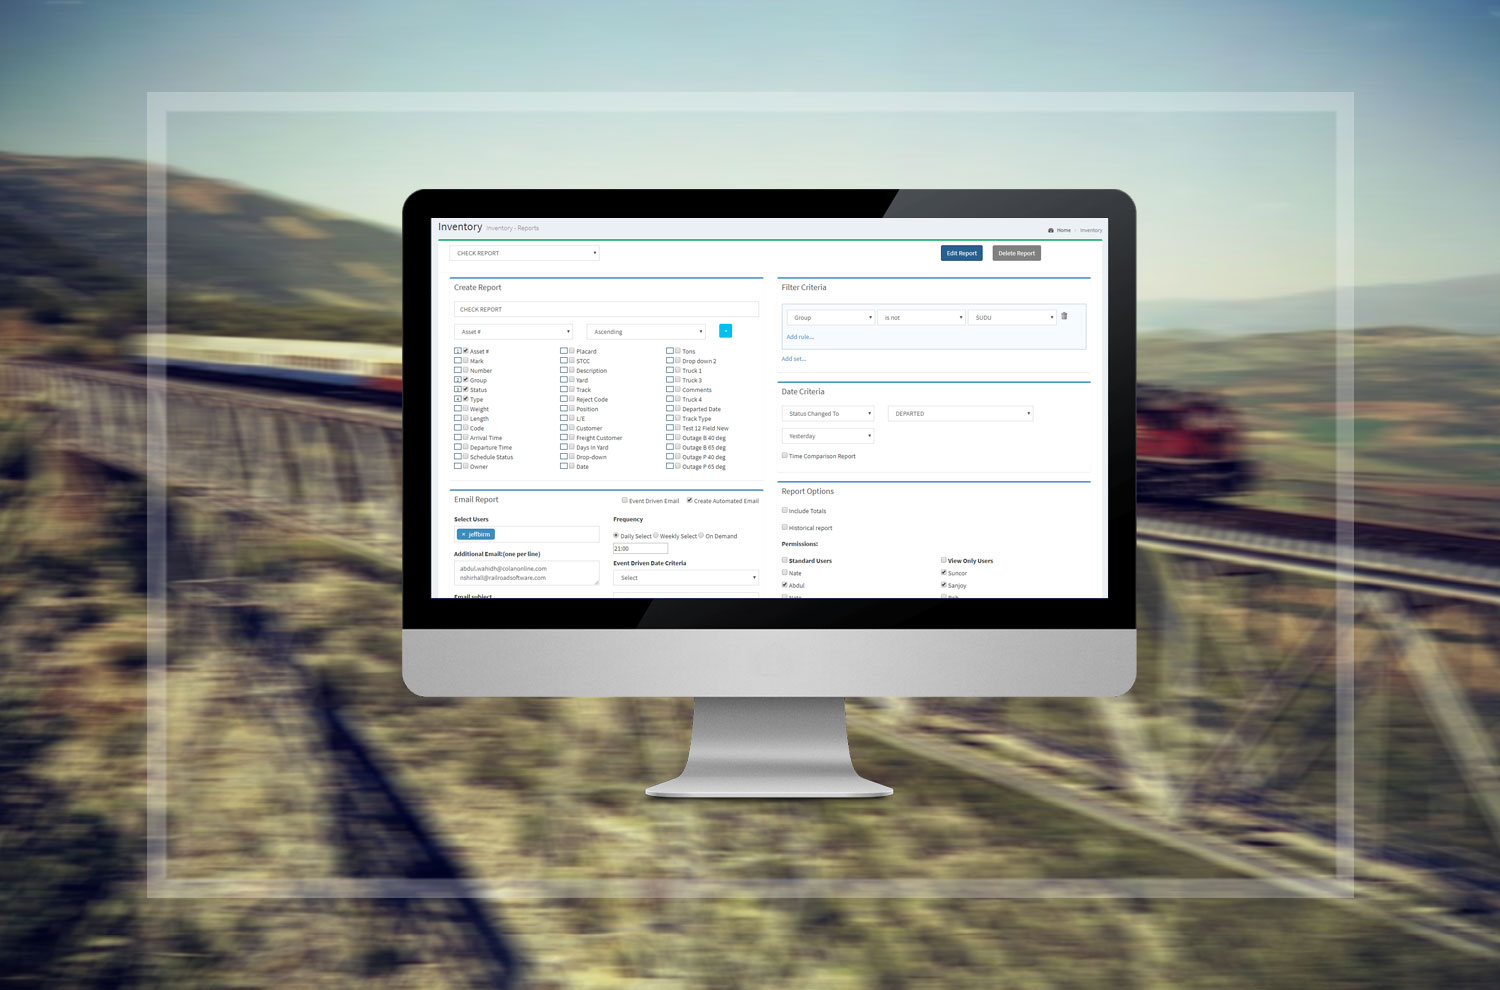 Railcar searches can be broken down by type, number, and others means to ensure no railcar is difficult to find within a facility